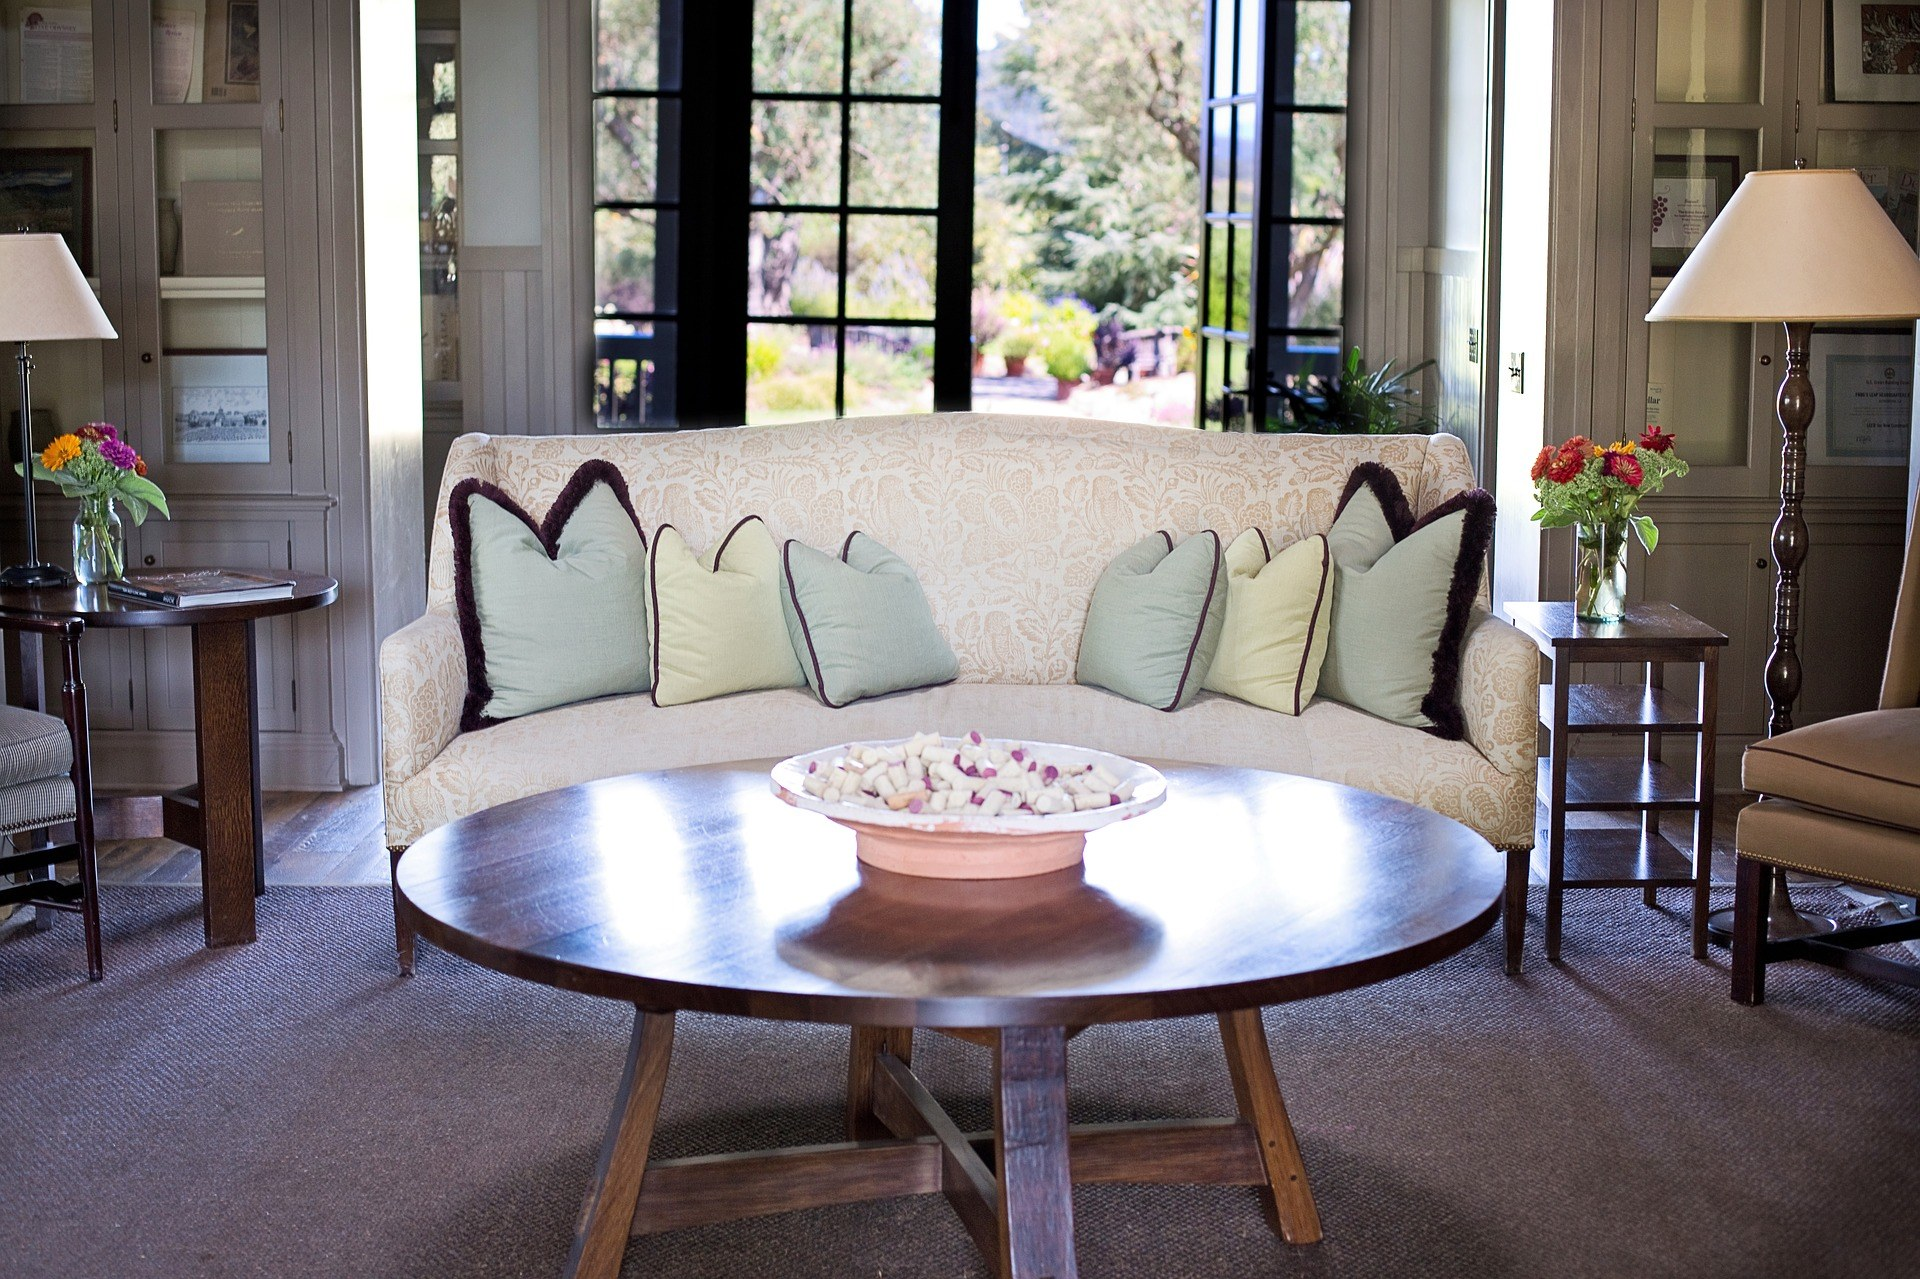 hunter realtor the to listing how of takes after over furniture pictures and christine rowe home sell nguyen for before your importance decluttering staging